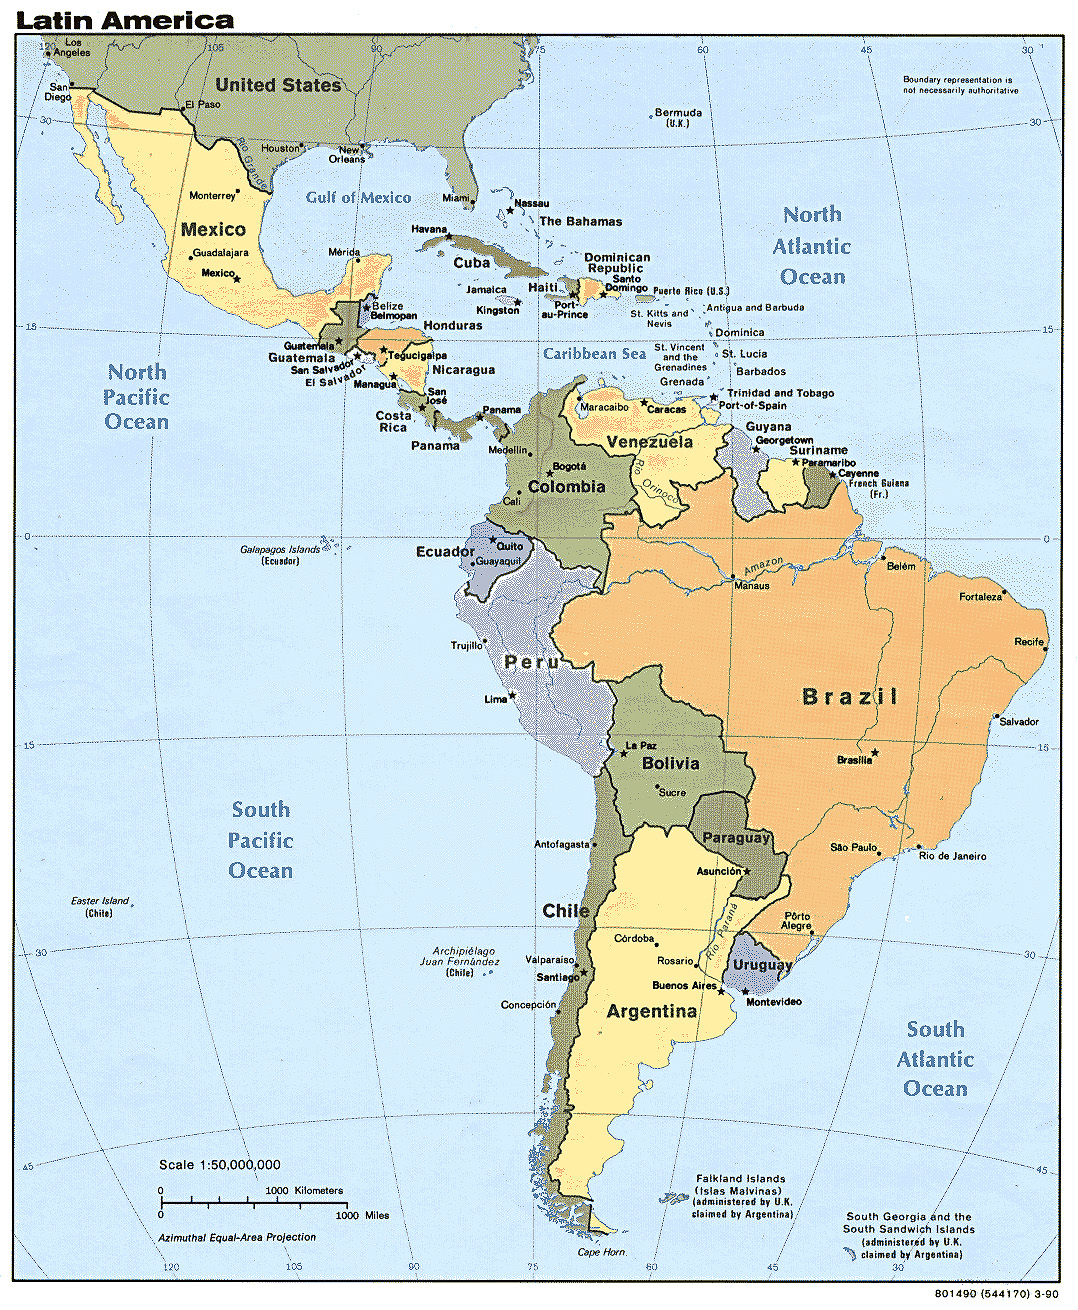 latin-america-political-map.jpg